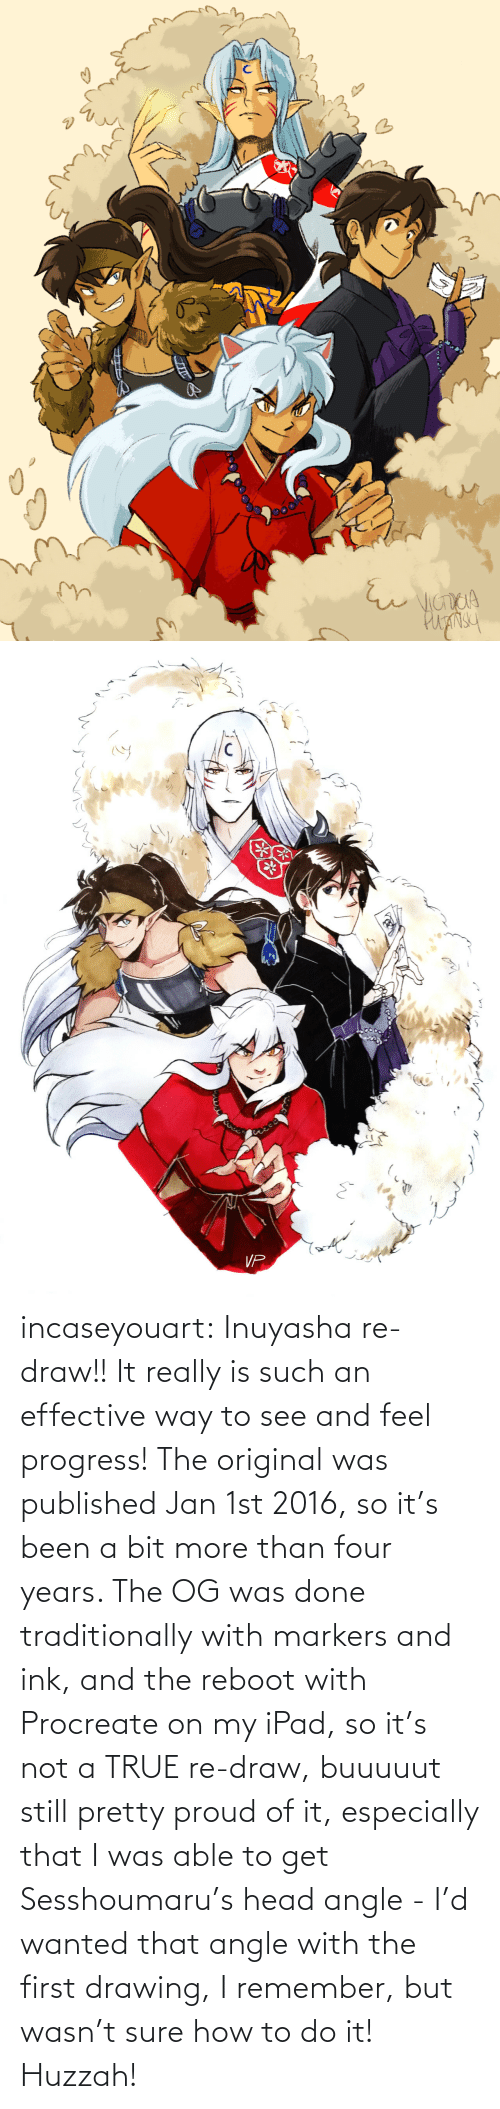 head: incaseyouart:  Inuyasha re-draw!! It really is such an effective way to see and feel progress! The original was published Jan 1st 2016, so it's been a bit more than four years. The OG was done traditionally with markers and ink, and the reboot with Procreate on my iPad, so it's not a TRUE re-draw, buuuuut still pretty proud of it, especially that I was able to get Sesshoumaru's head angle - I'd wanted that angle with the first drawing, I remember, but wasn't sure how to do it! Huzzah!